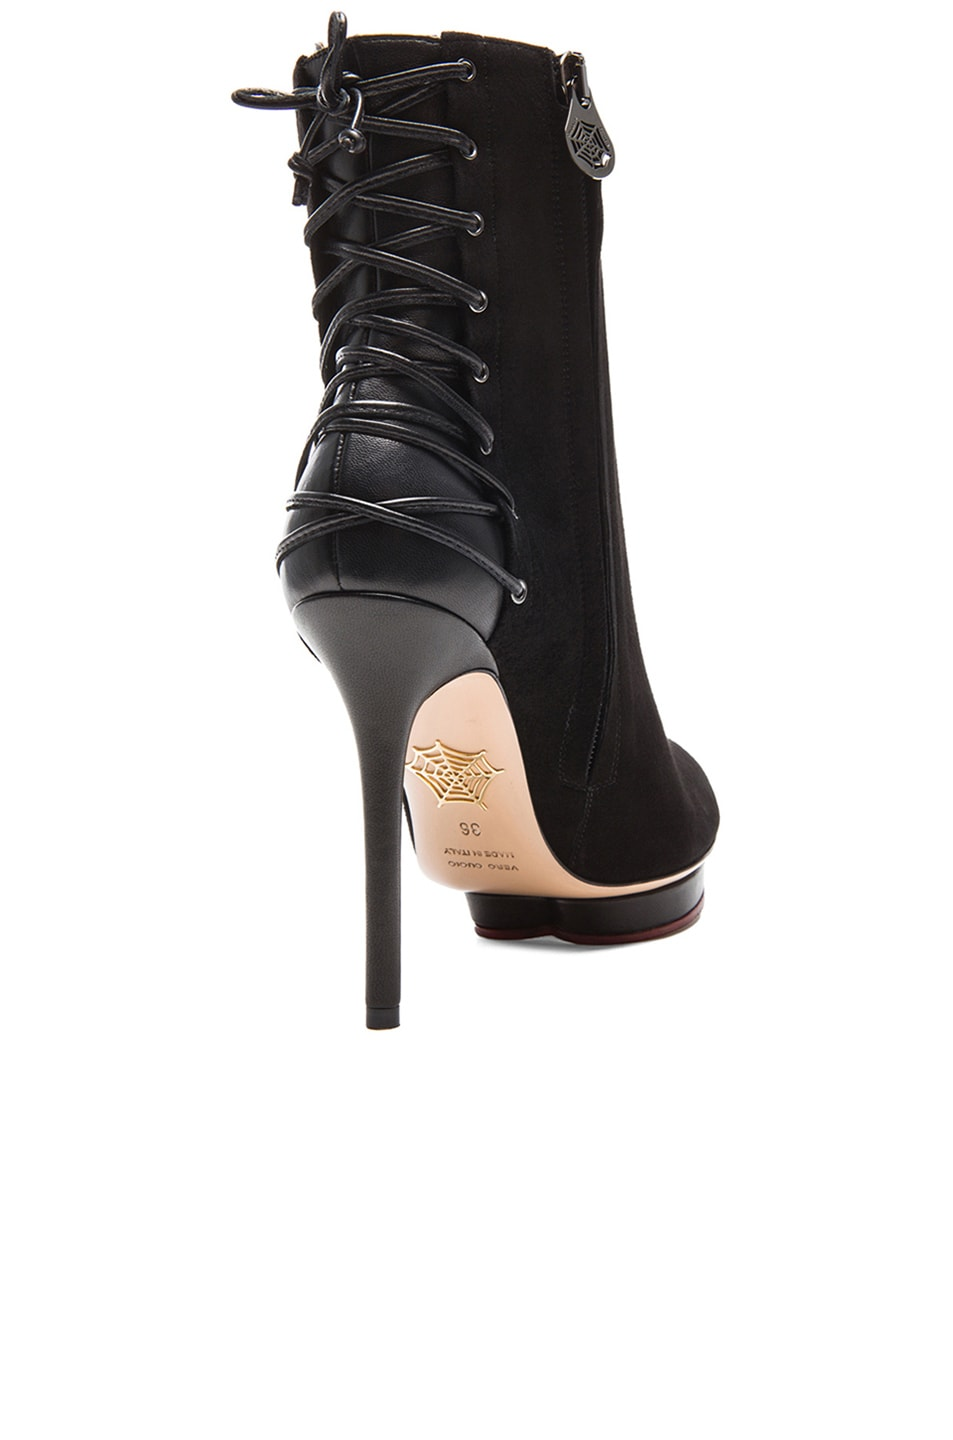 Image 3 of Charlotte Olympia Laced-Up Deborah Suede Booties in Black